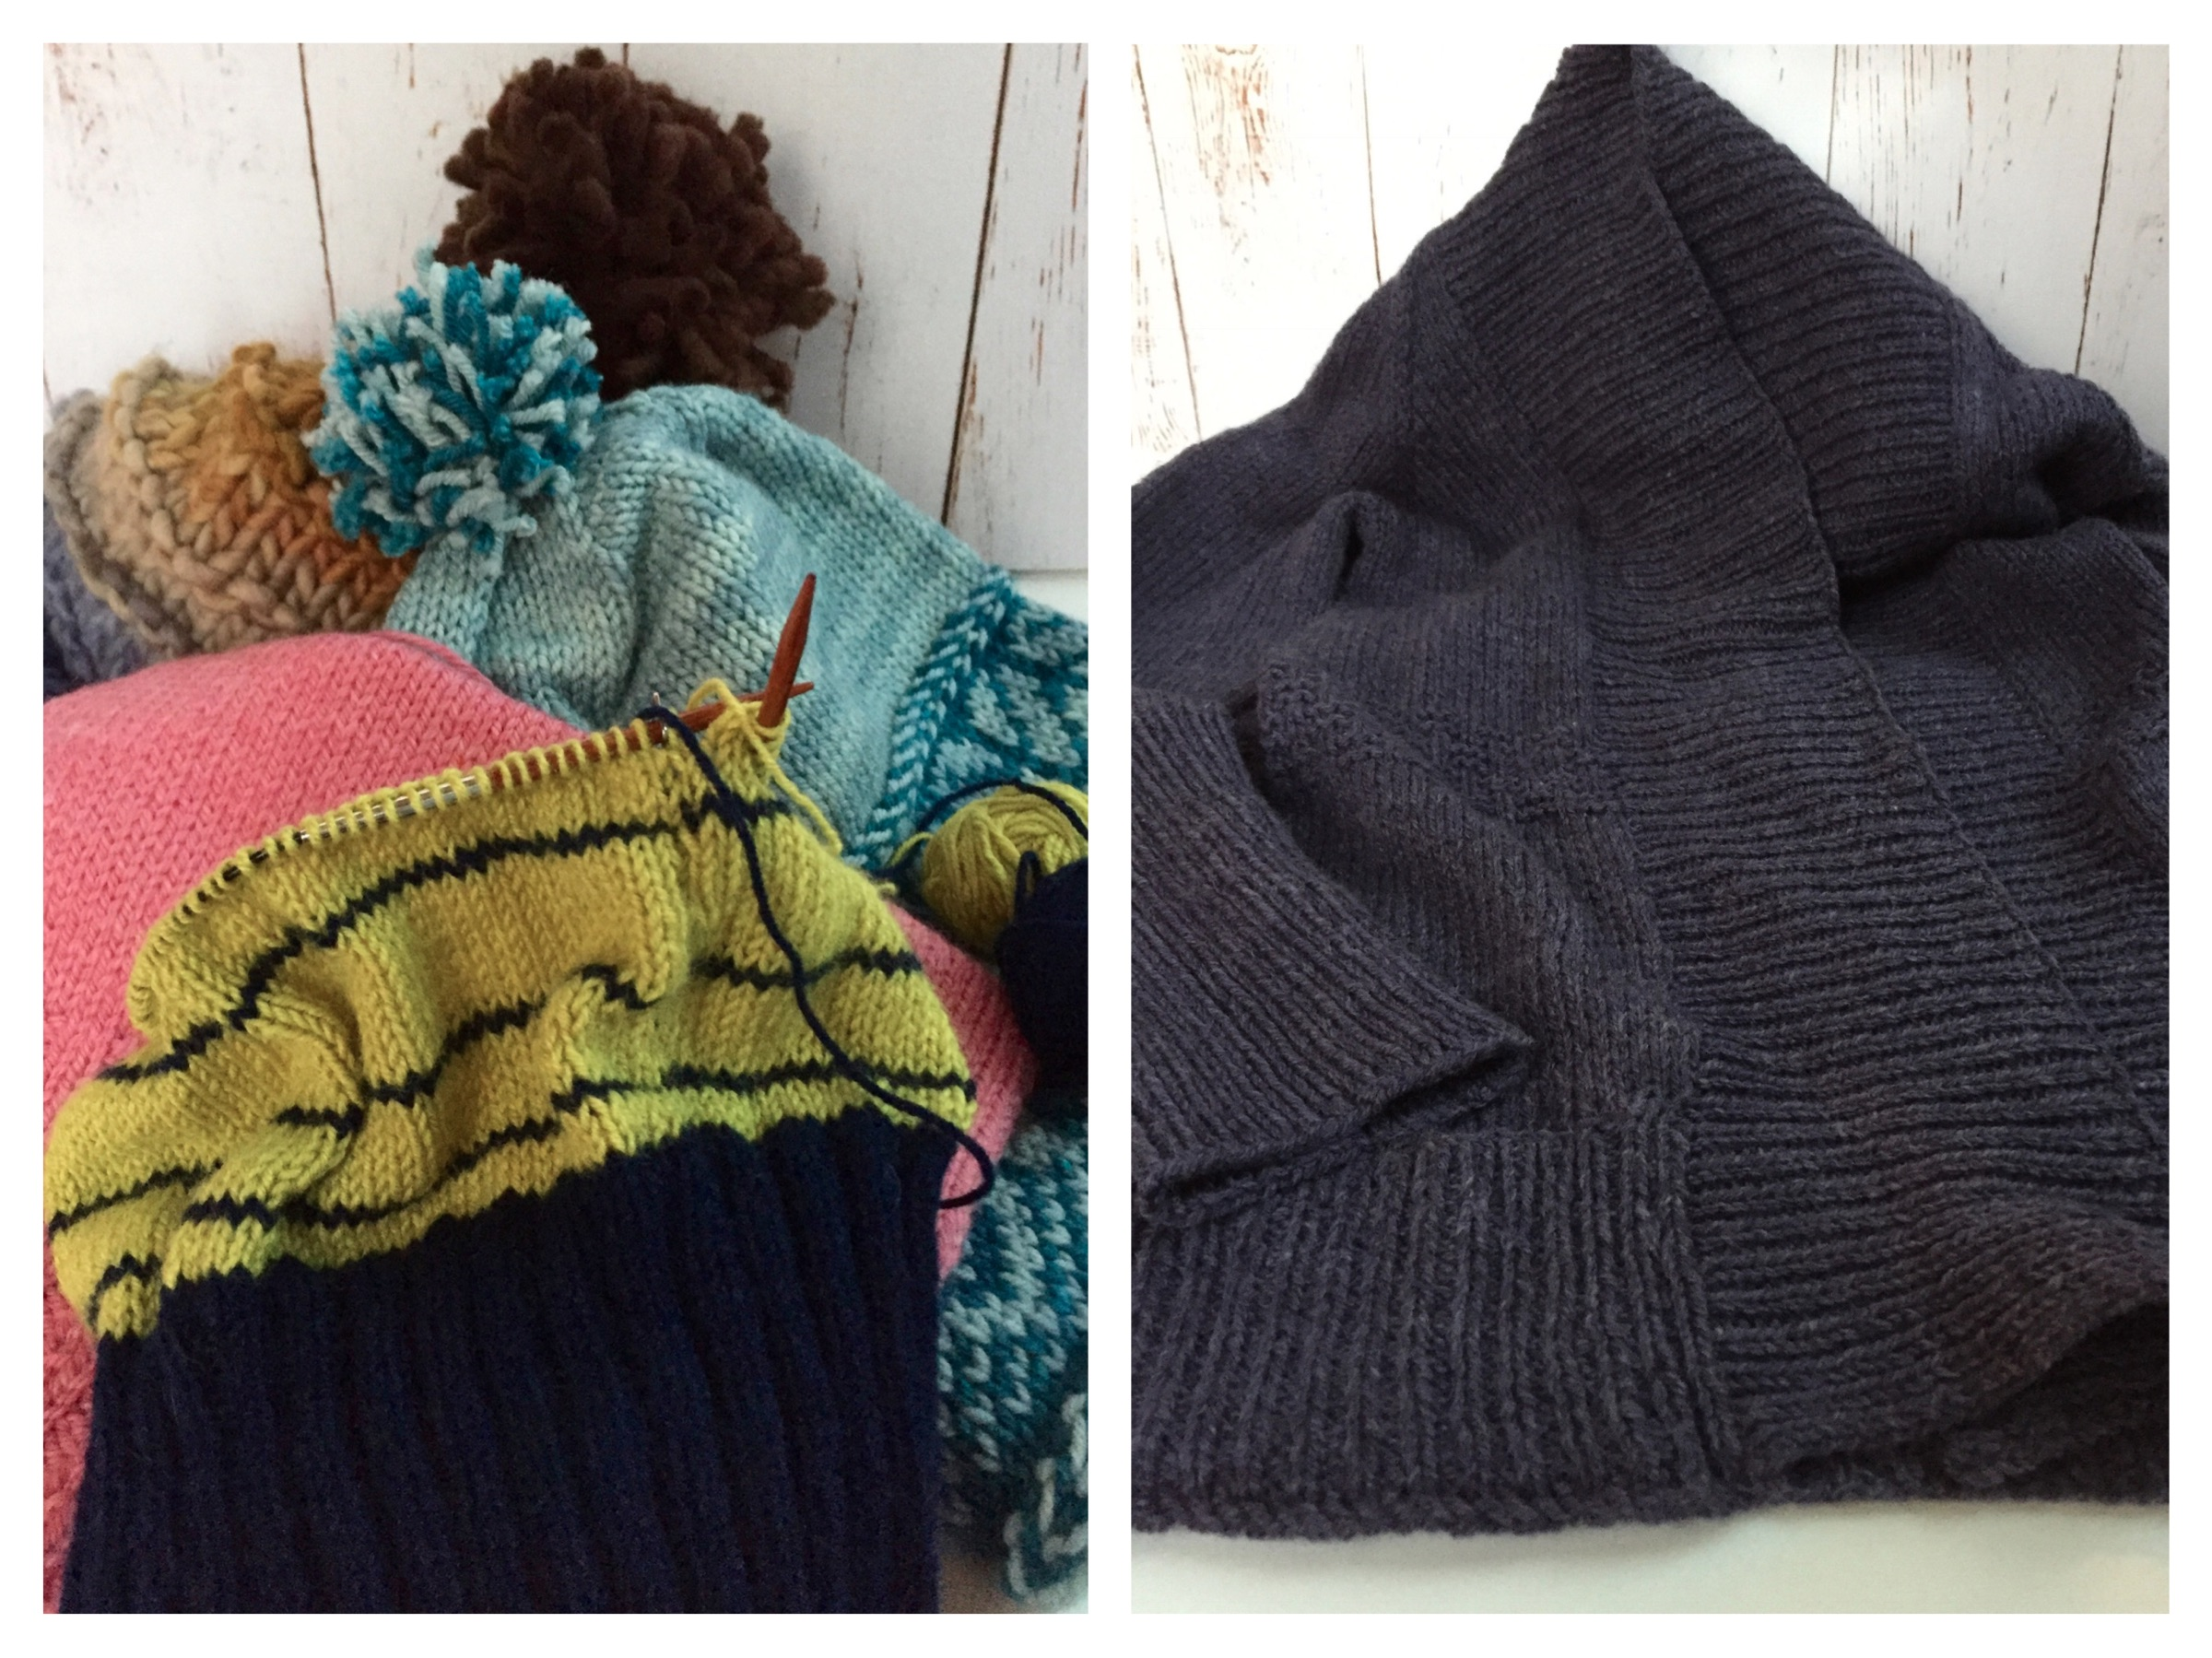 The good news is that I completed several knitting projects this week. Some of the hats (on the left) had been made and just need a final pom-pom or edge sewing. The sweater (on the right) was soaked and blocked to dry for its final step.